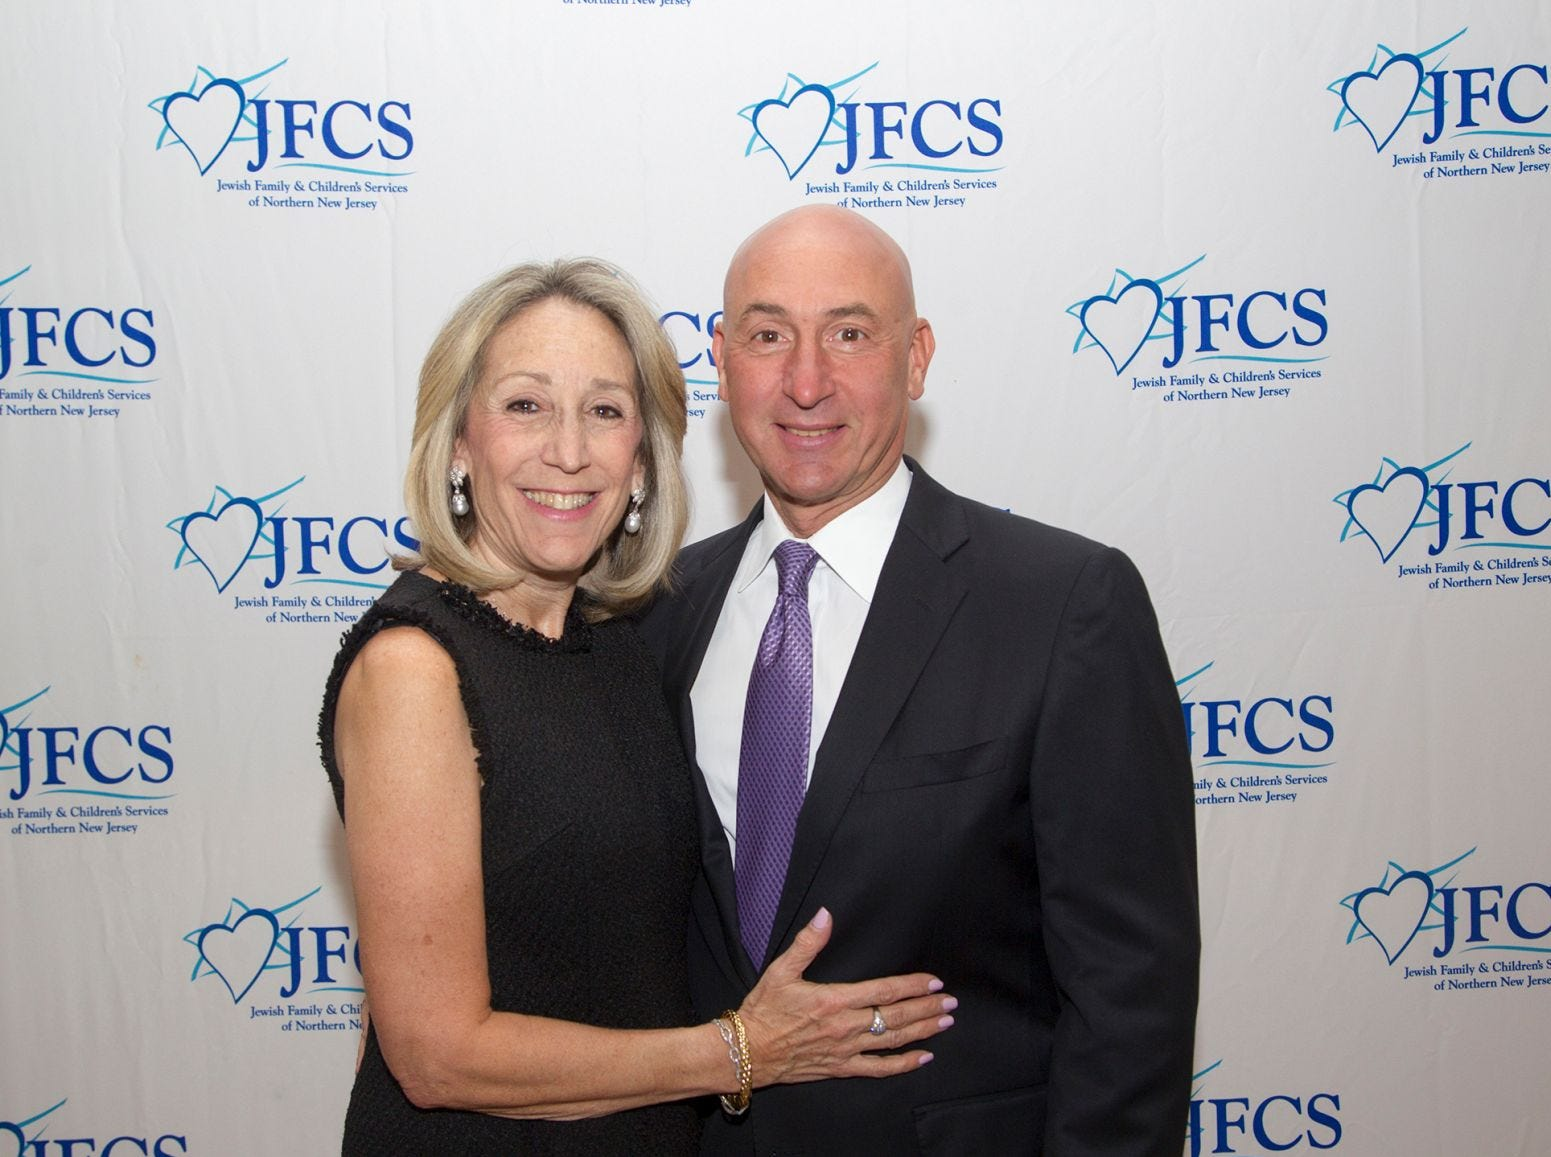 Stacey and Neil Weiss. Jewish Family & Children's Services of Northern New Jersey held its annual gala at the Edgewood Country Club in River Vale. The evening honored Shira Feuerstein, Jayne Petak, and Alan Scharfstein for their leadership, support, and dedication. 11/18/2018